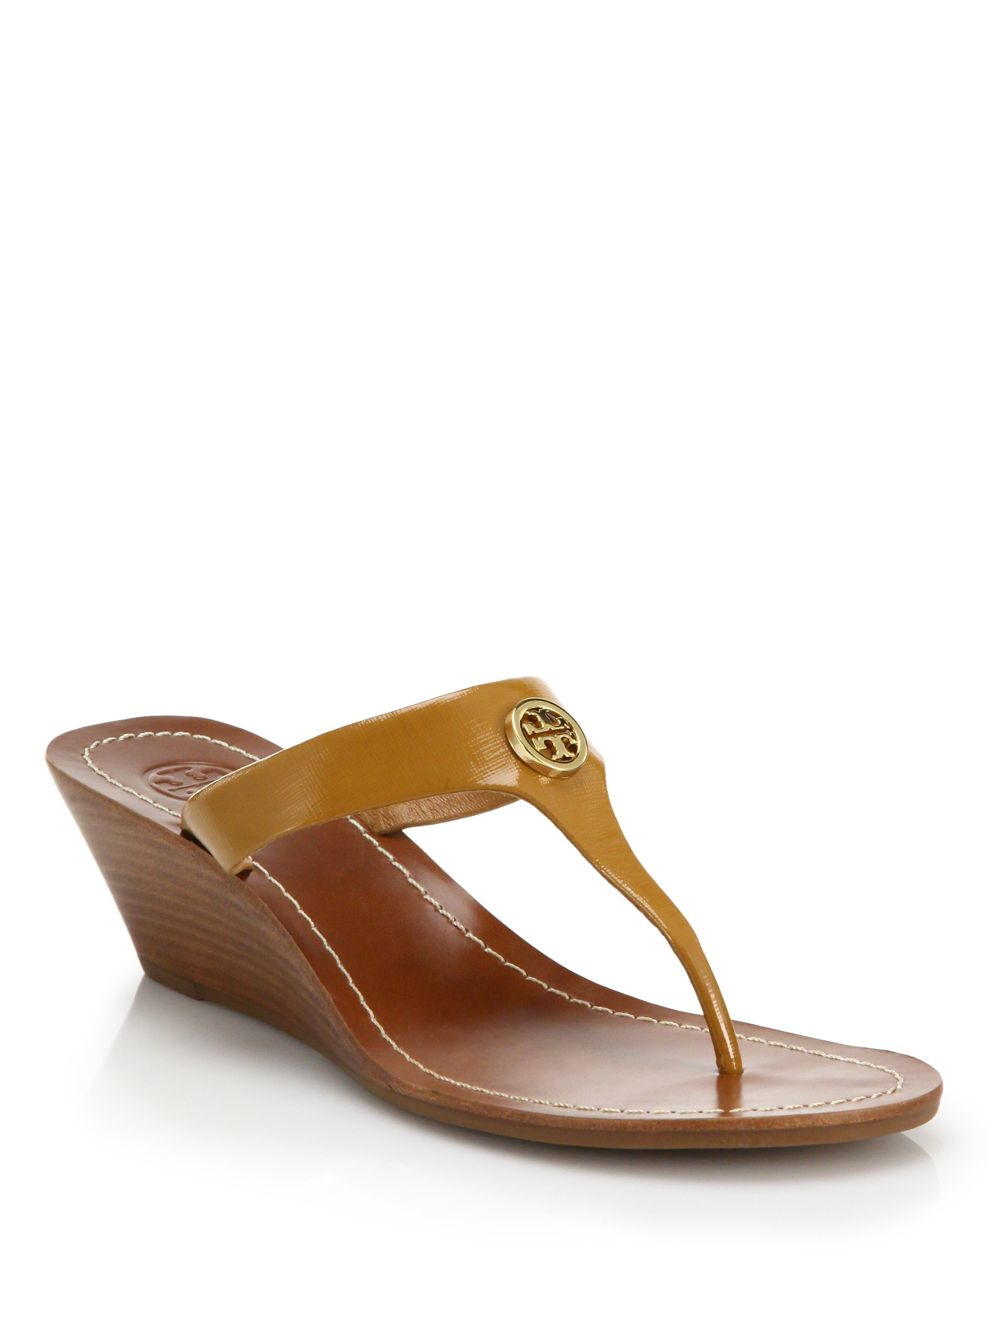 Lyst Tory Burch Cameron Logo Leather Thong Wedge Sandals